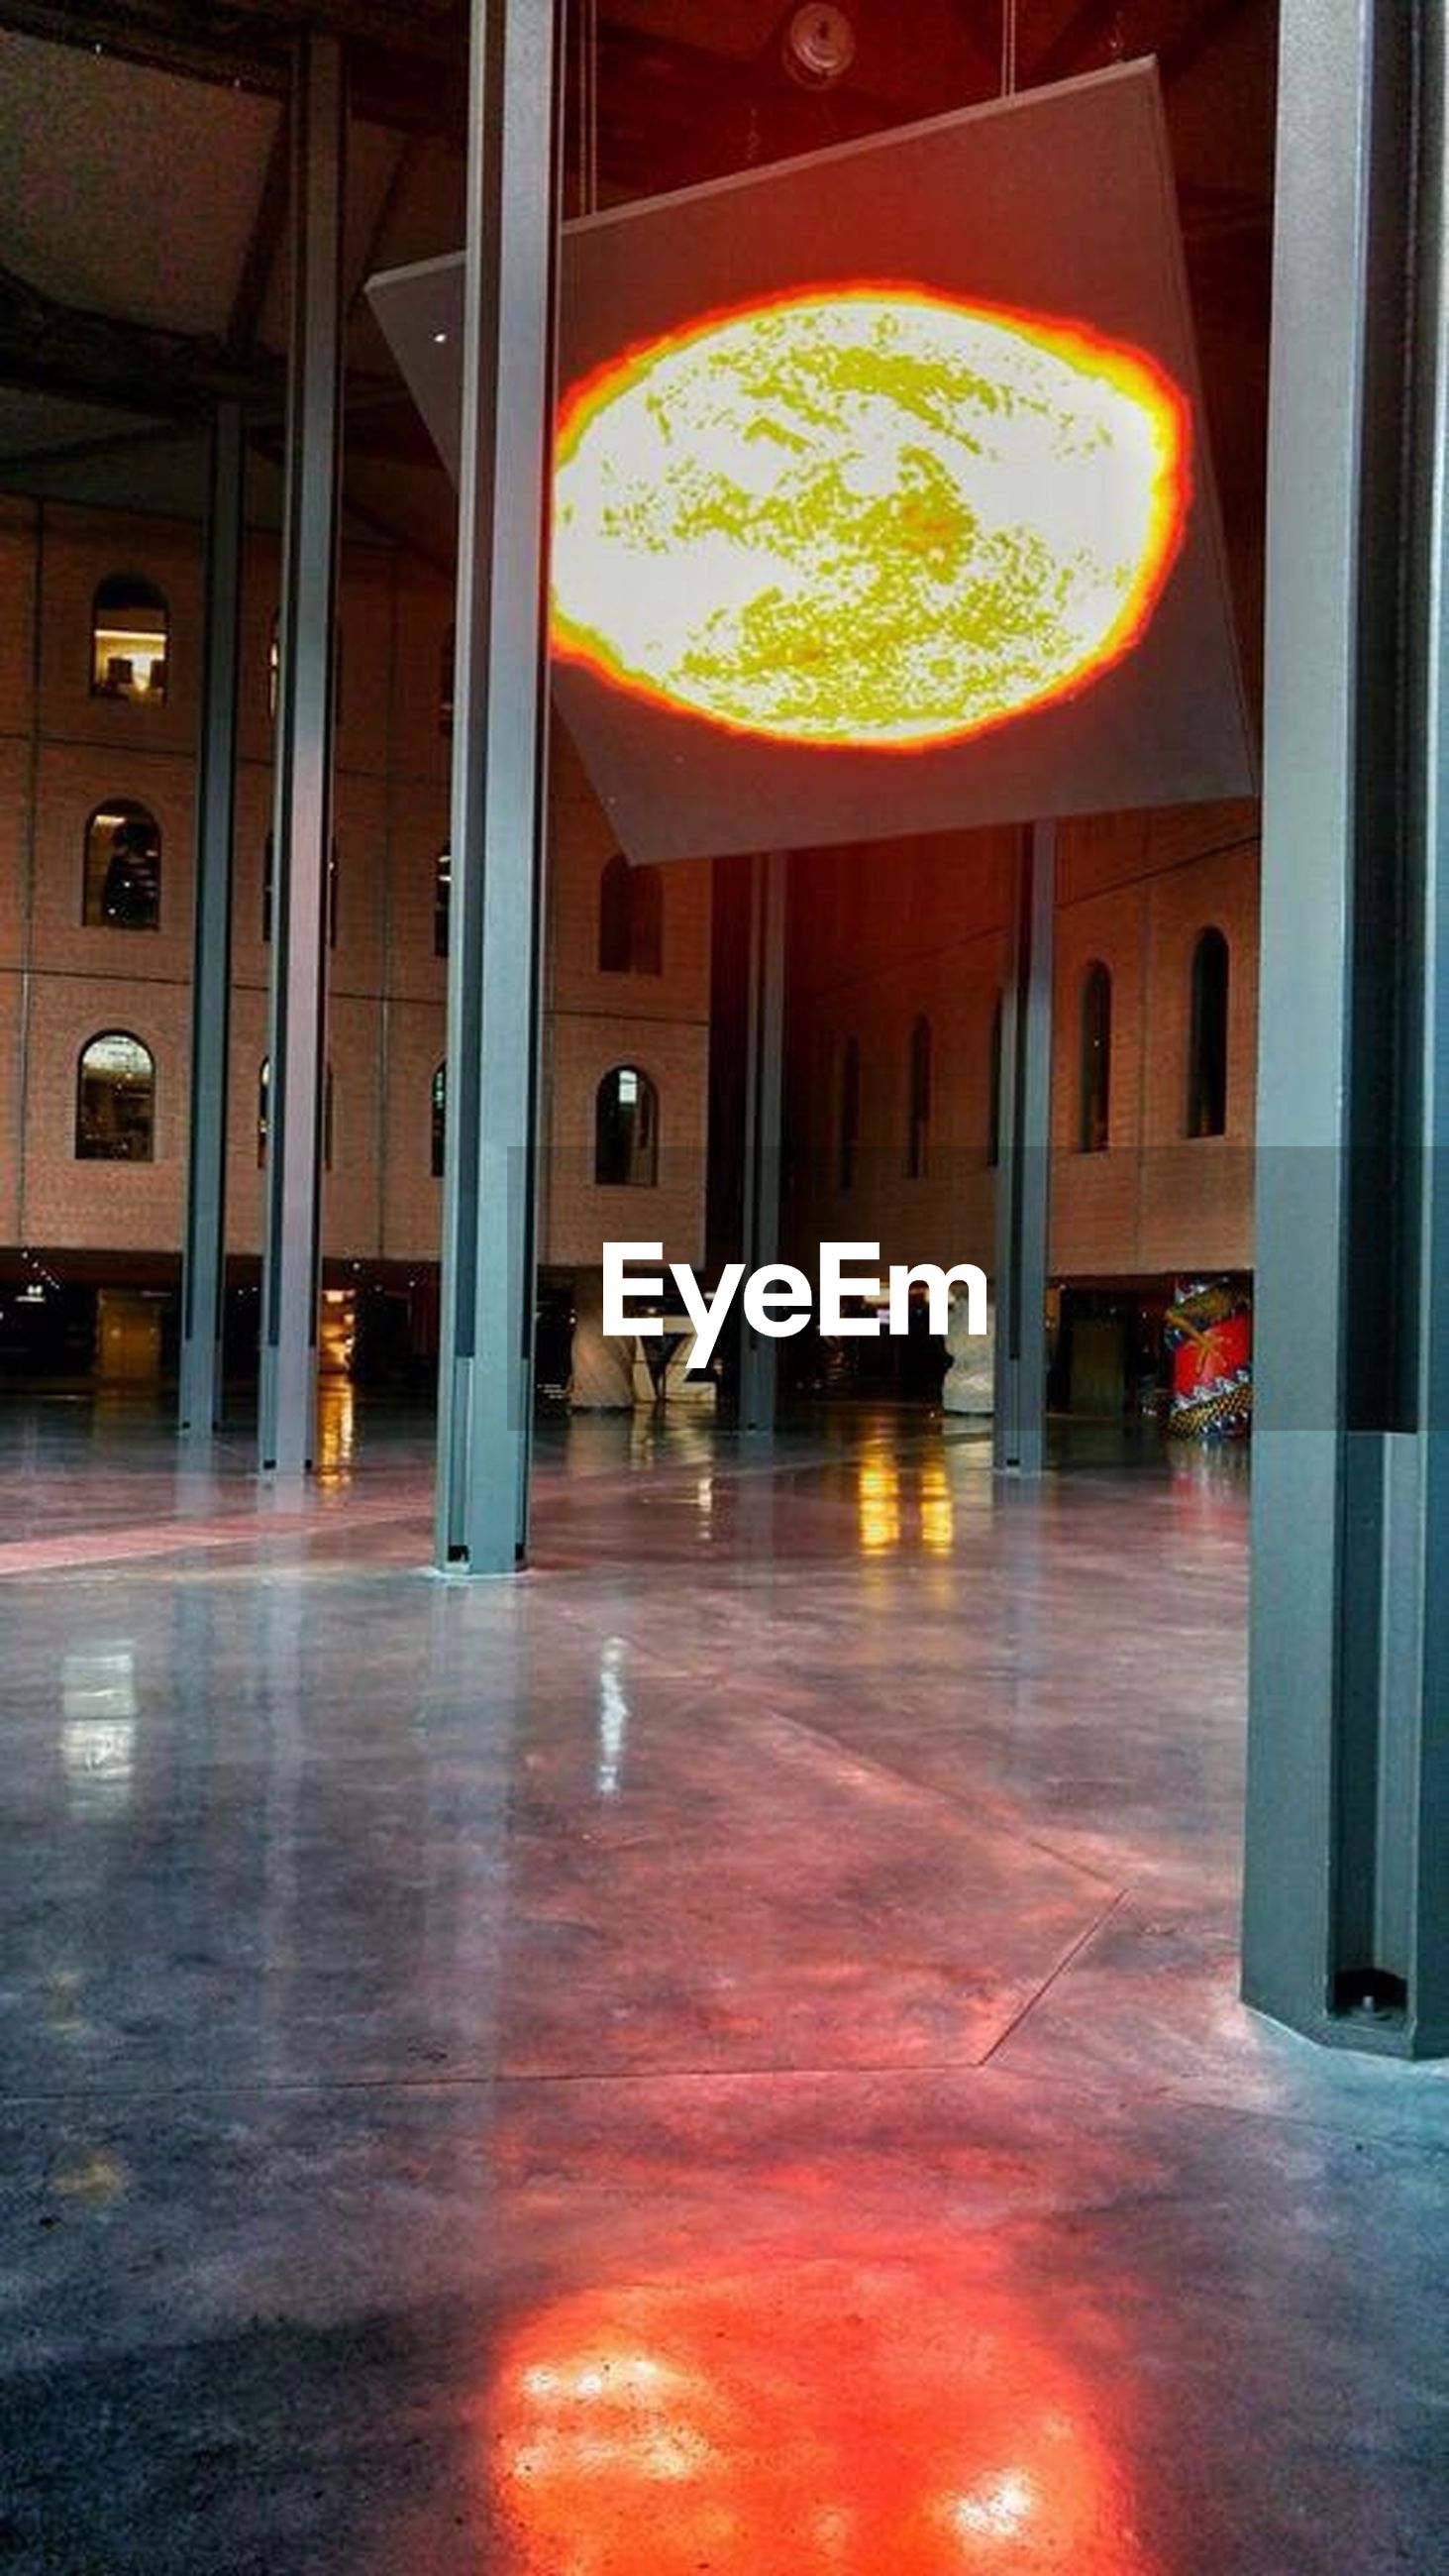 indoors, illuminated, architecture, built structure, window, reflection, lighting equipment, glass - material, flooring, empty, no people, absence, orange color, architectural column, ceiling, city, tiled floor, interior, night, glowing